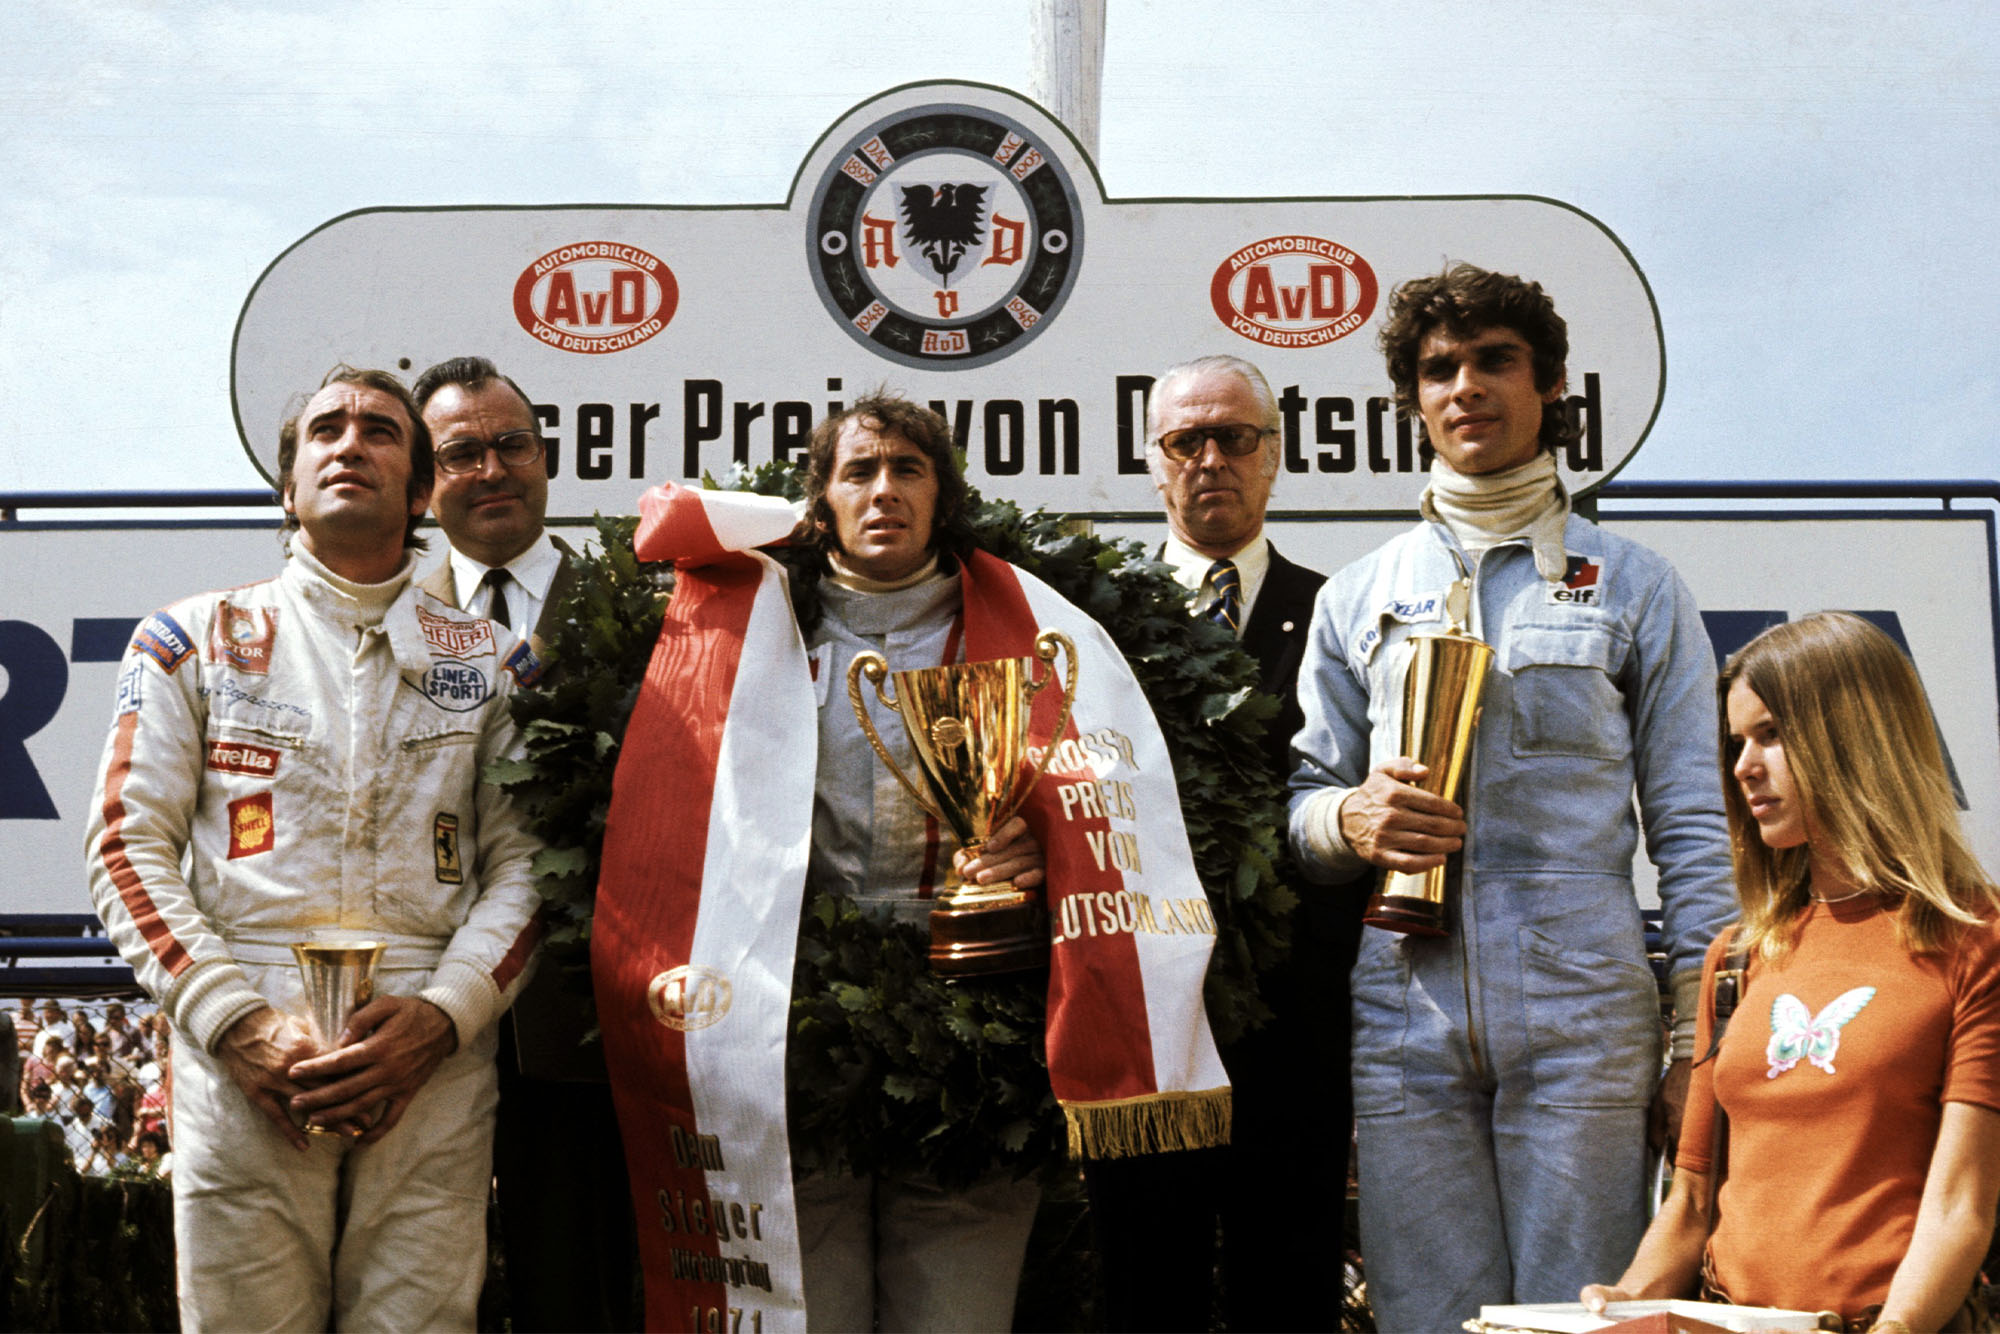 Jackie Stewart stands on the podium in between Clay Regazzoni (left) and Francois Cevert (right).